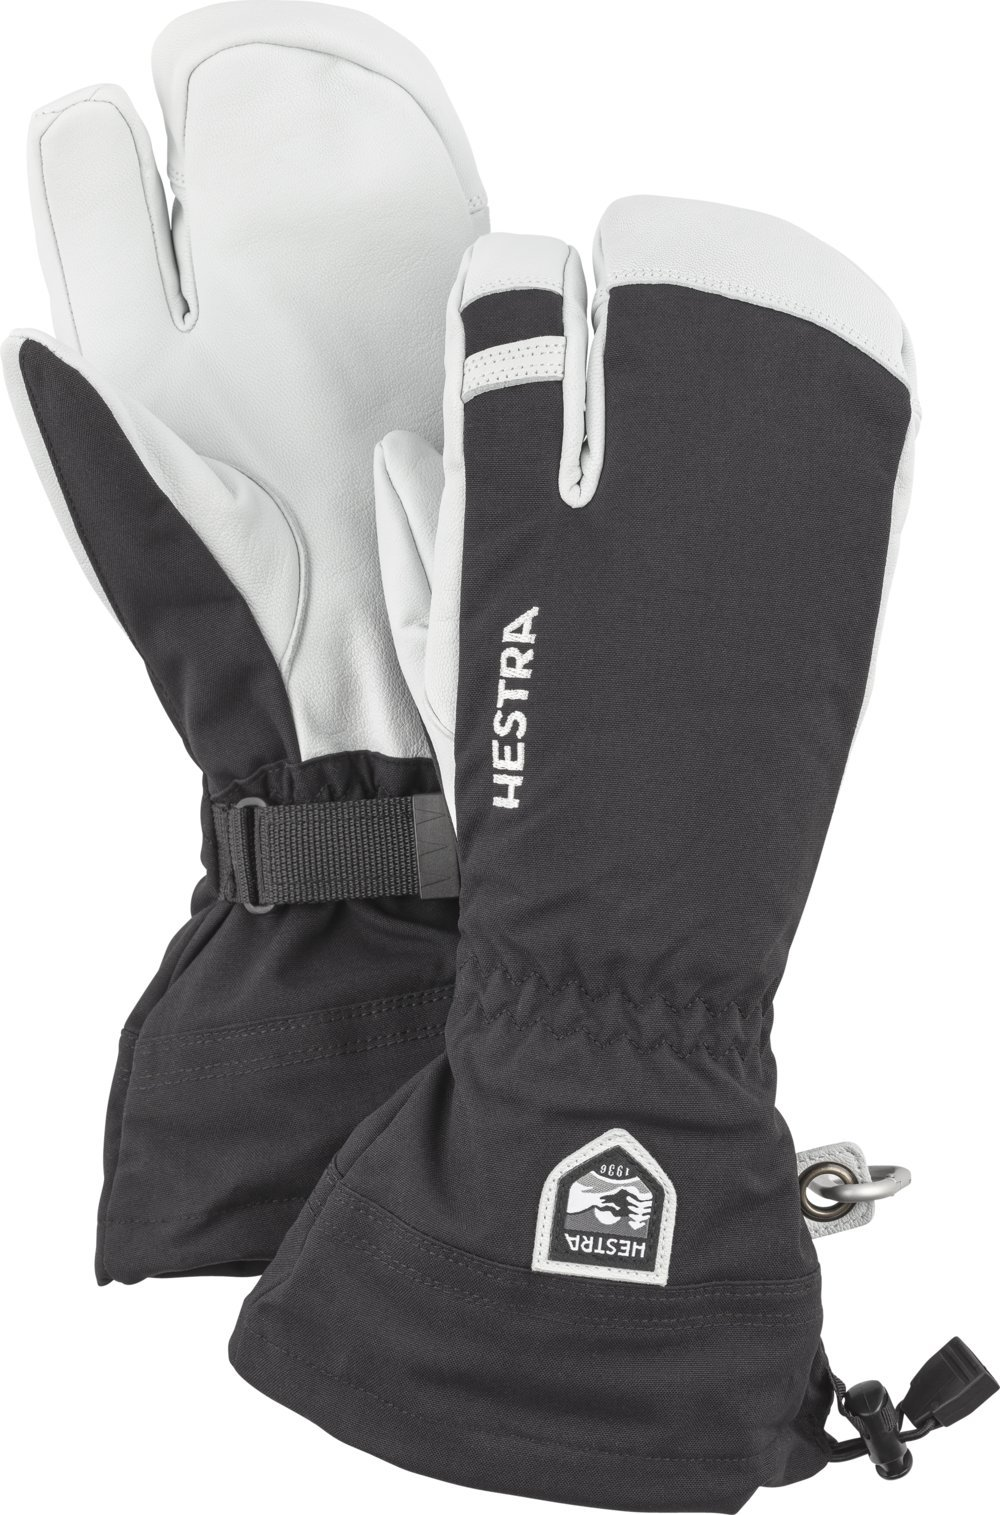 Hestra Army Leather Heli Ski 3-Finger Gloves with Gauntlet,Black,8 by Hestra